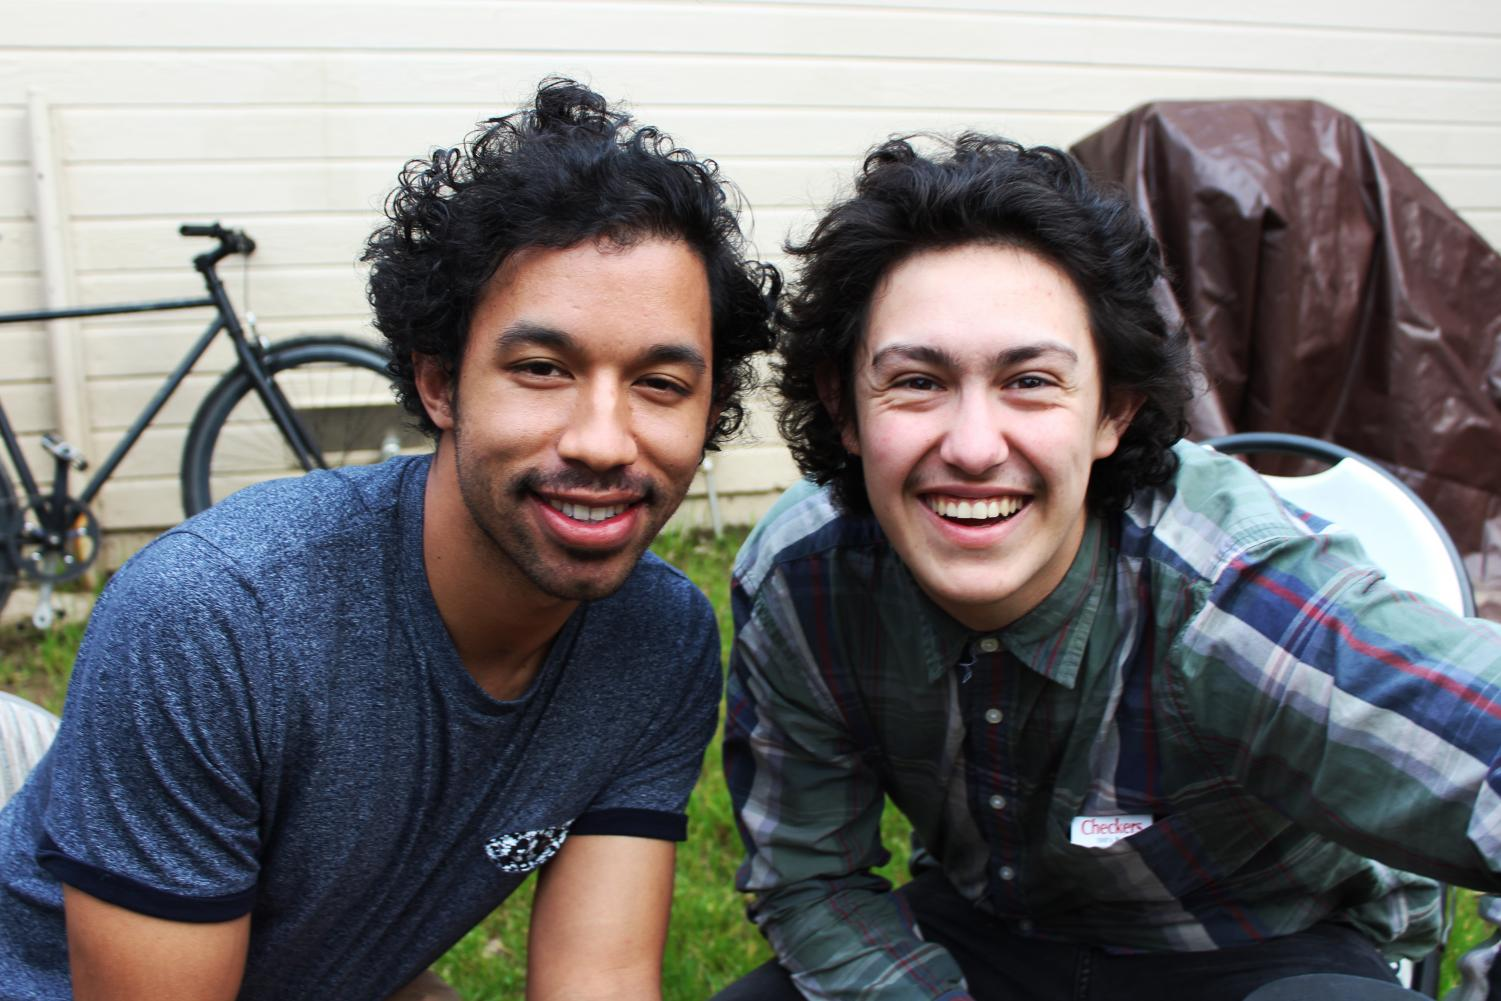 Hobo Johnson, right, really named Frank Lopes, poses with bandmate Derek Lynch in a photo taken for a previous State Hornet story.